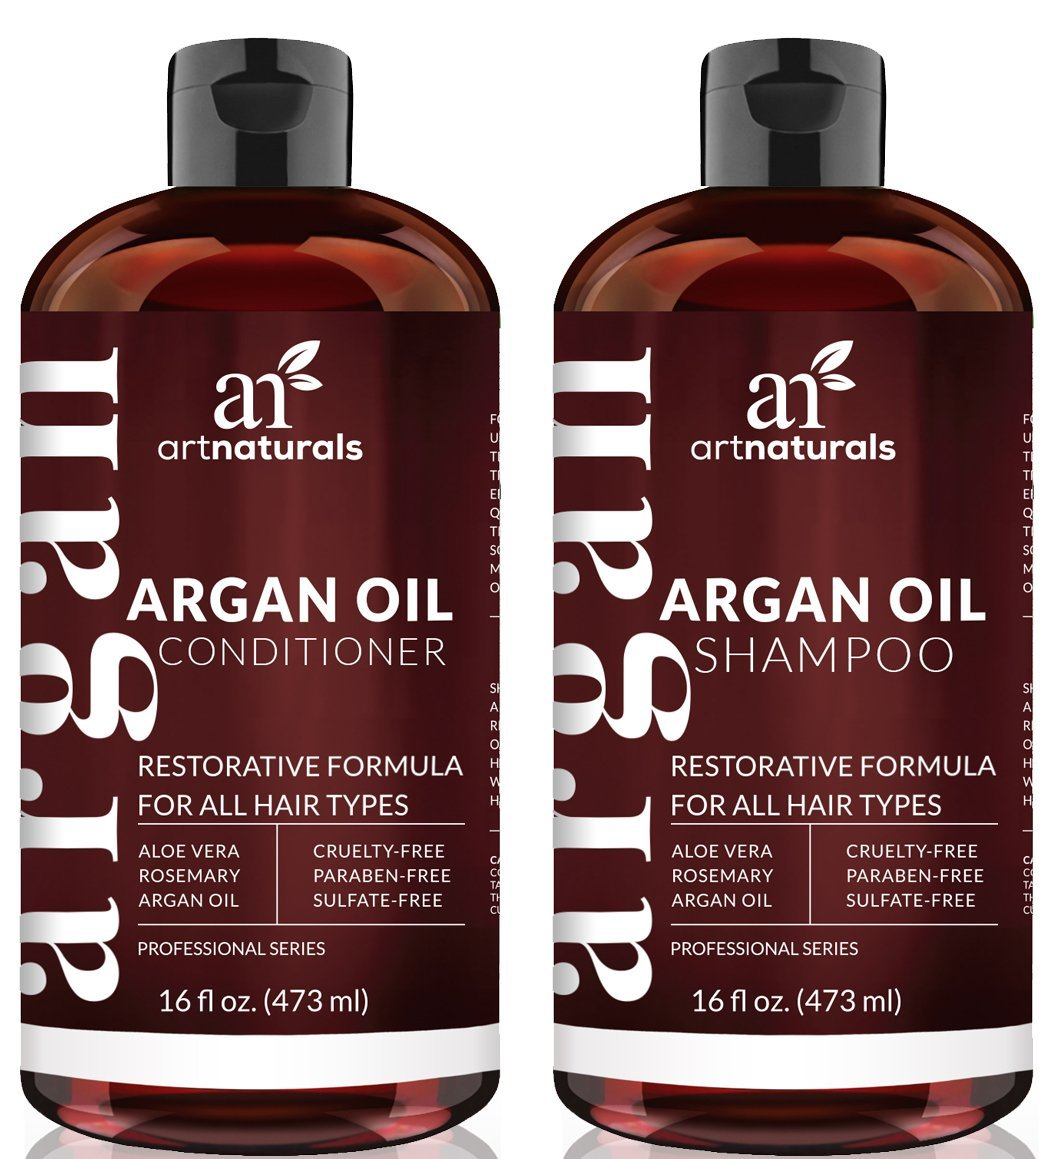 Top 10 Best Shampoo And Conditioner Sets In 2018 Reviews